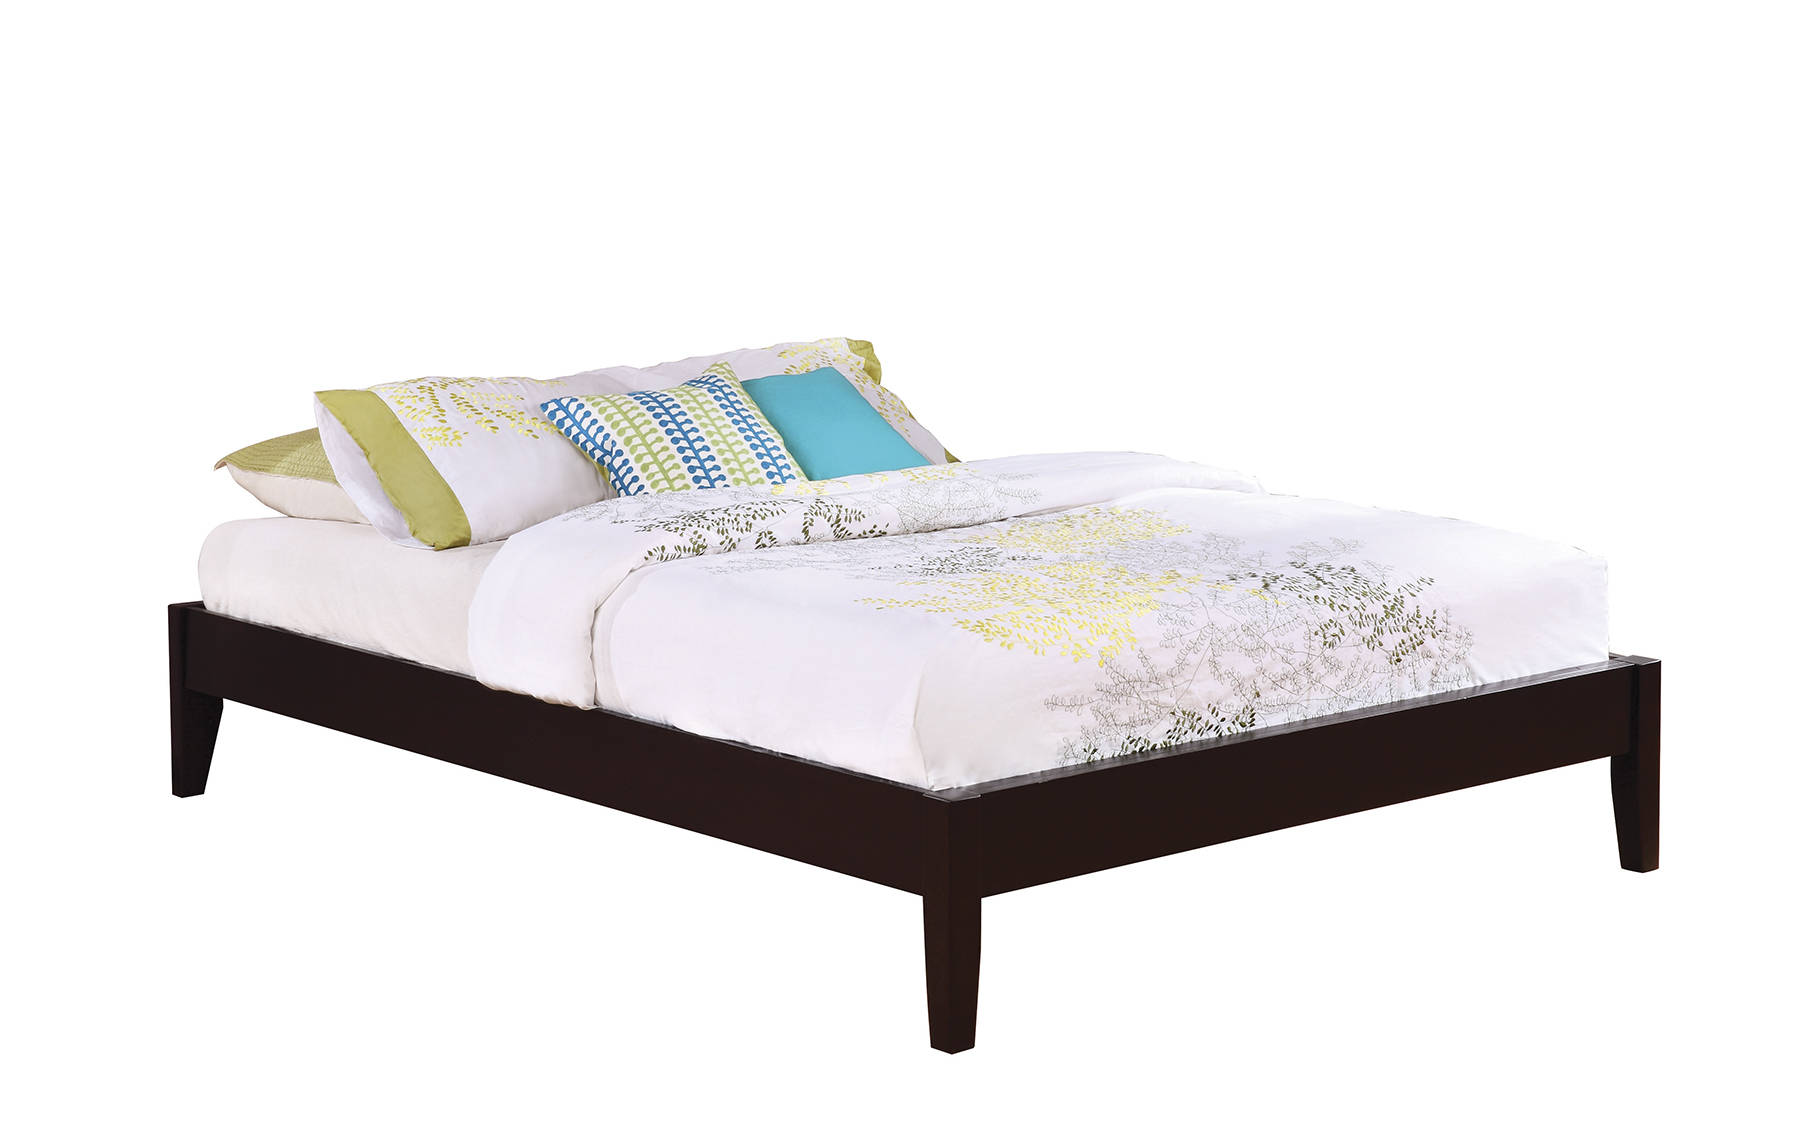 Coaster Furniture Hounslow Twin Bed The Classy Home